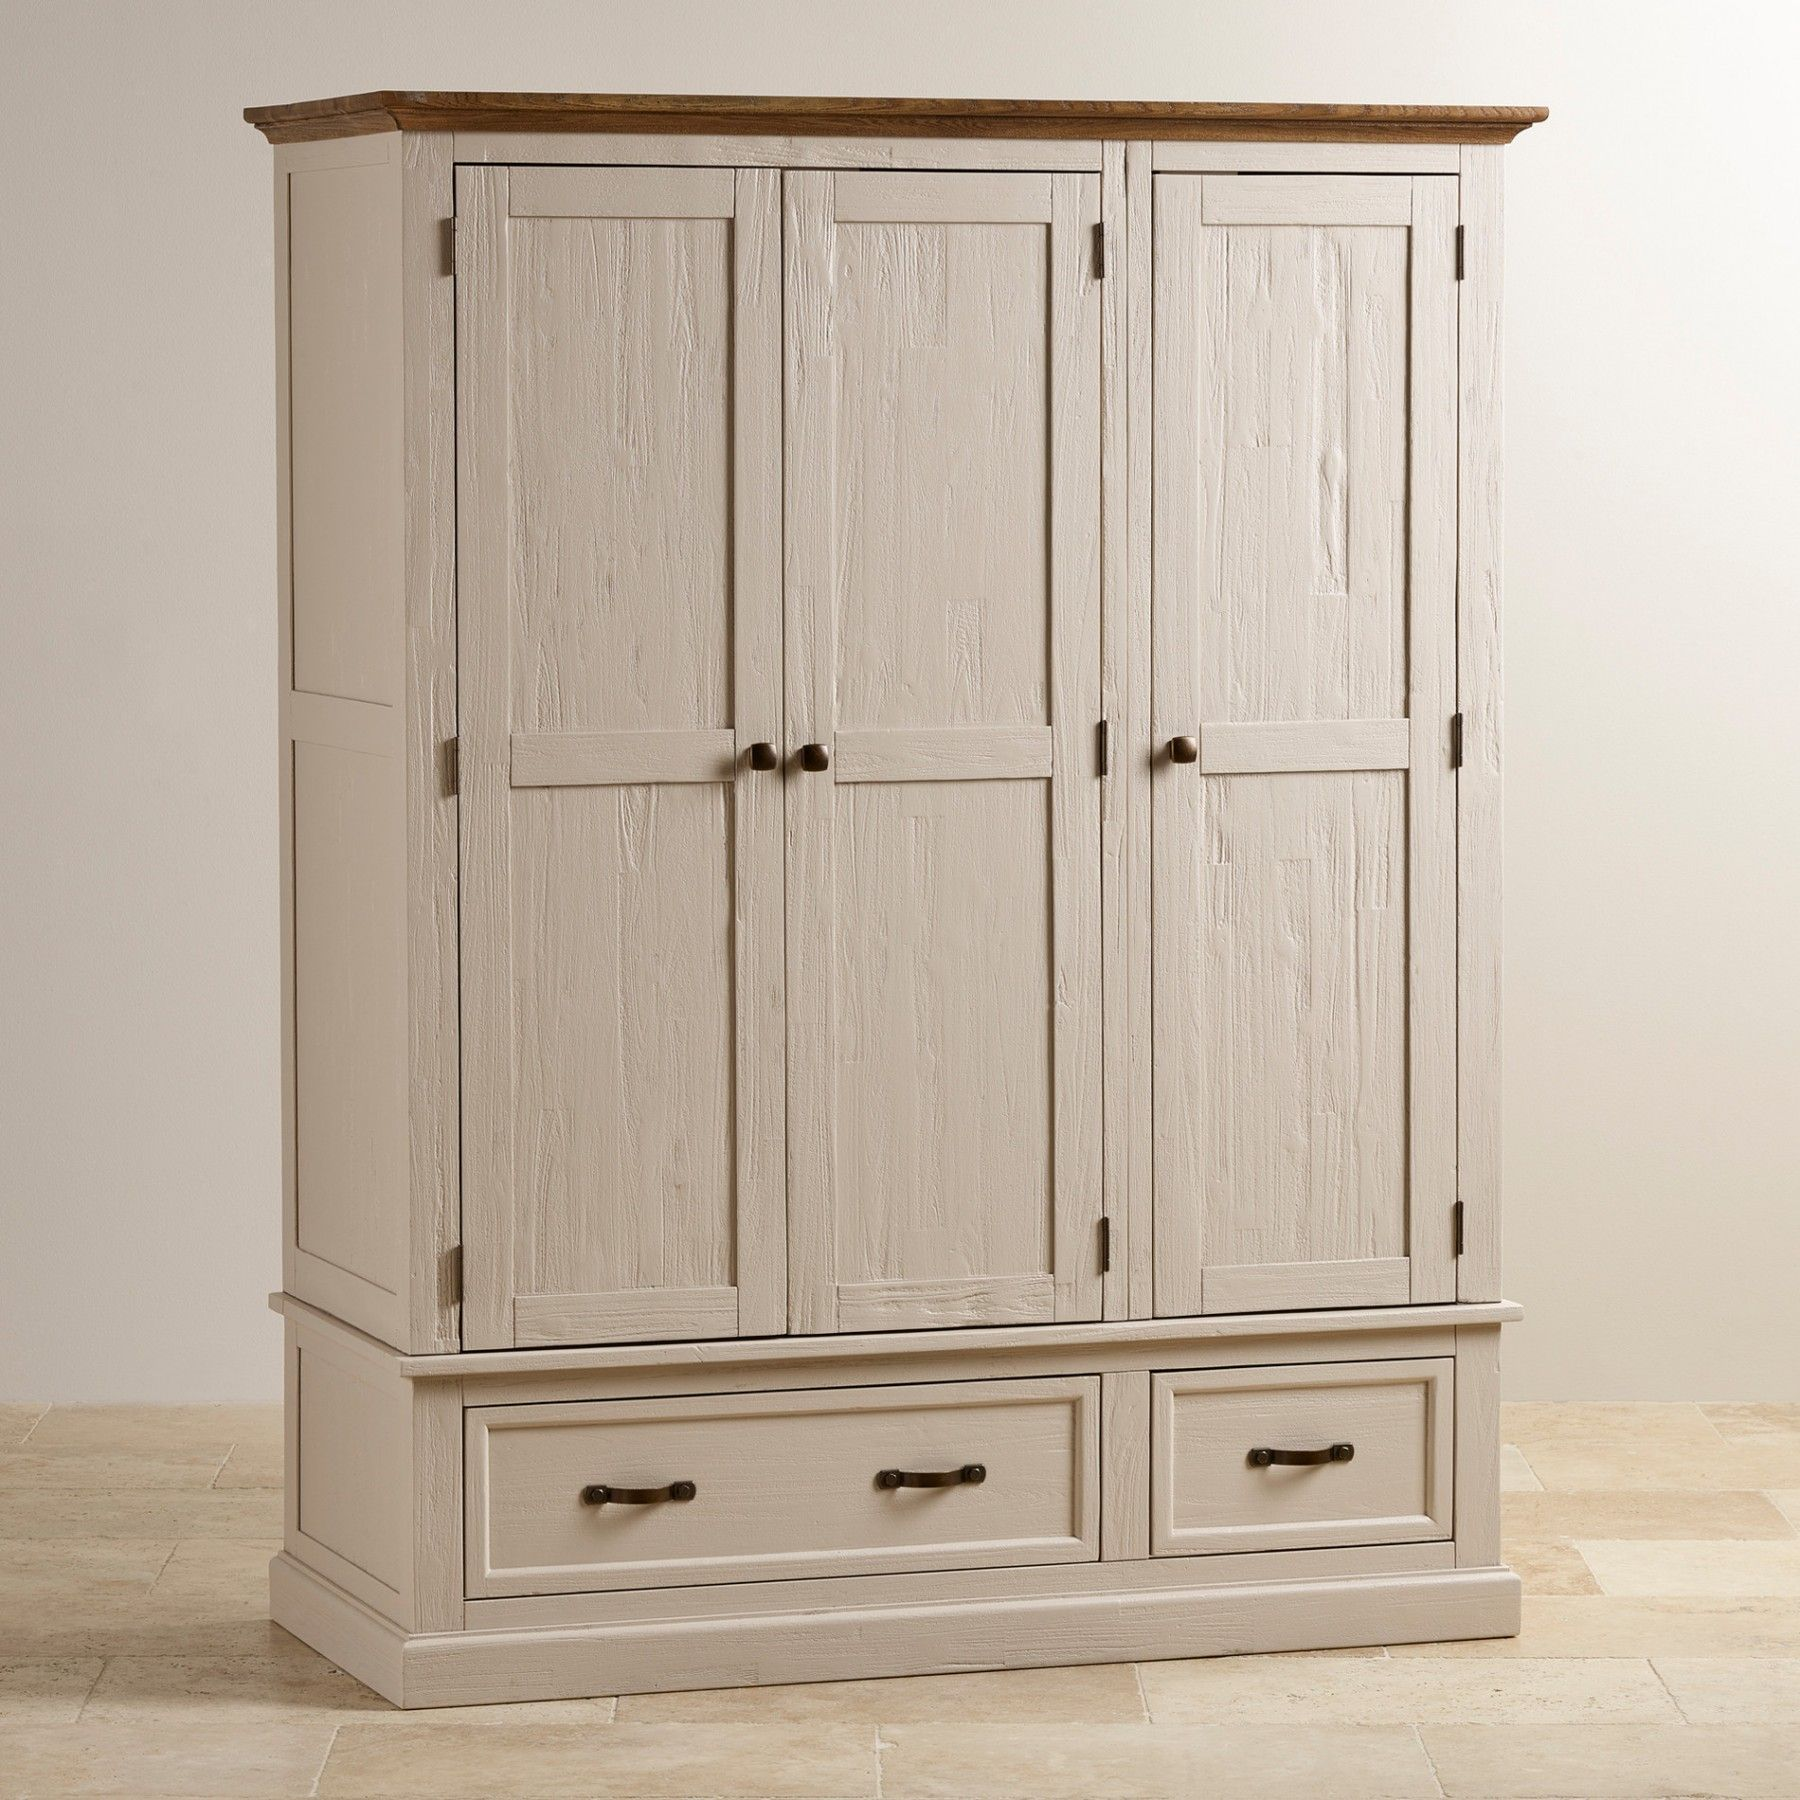 Seychelles Painted And Brushed Solid Oak Large Armoire Armoire Painted Armoire Solid Wood Wardrobes